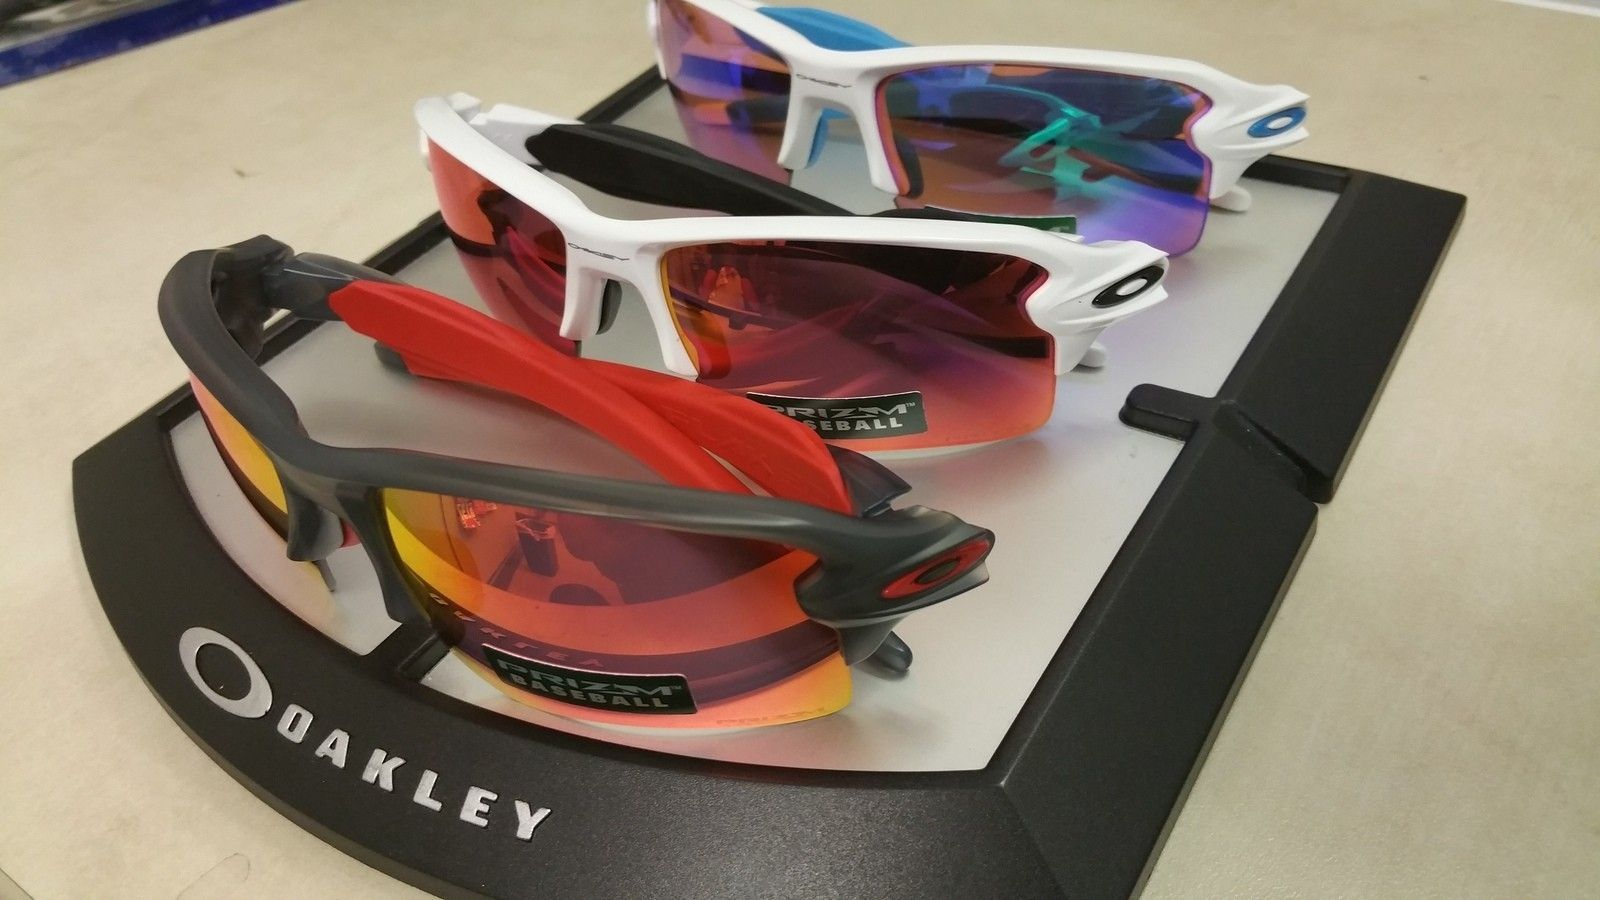 A few Prizm flak jacket 2.0 glasses for sale. - uploadfromtaptalk1438026308906.jpg